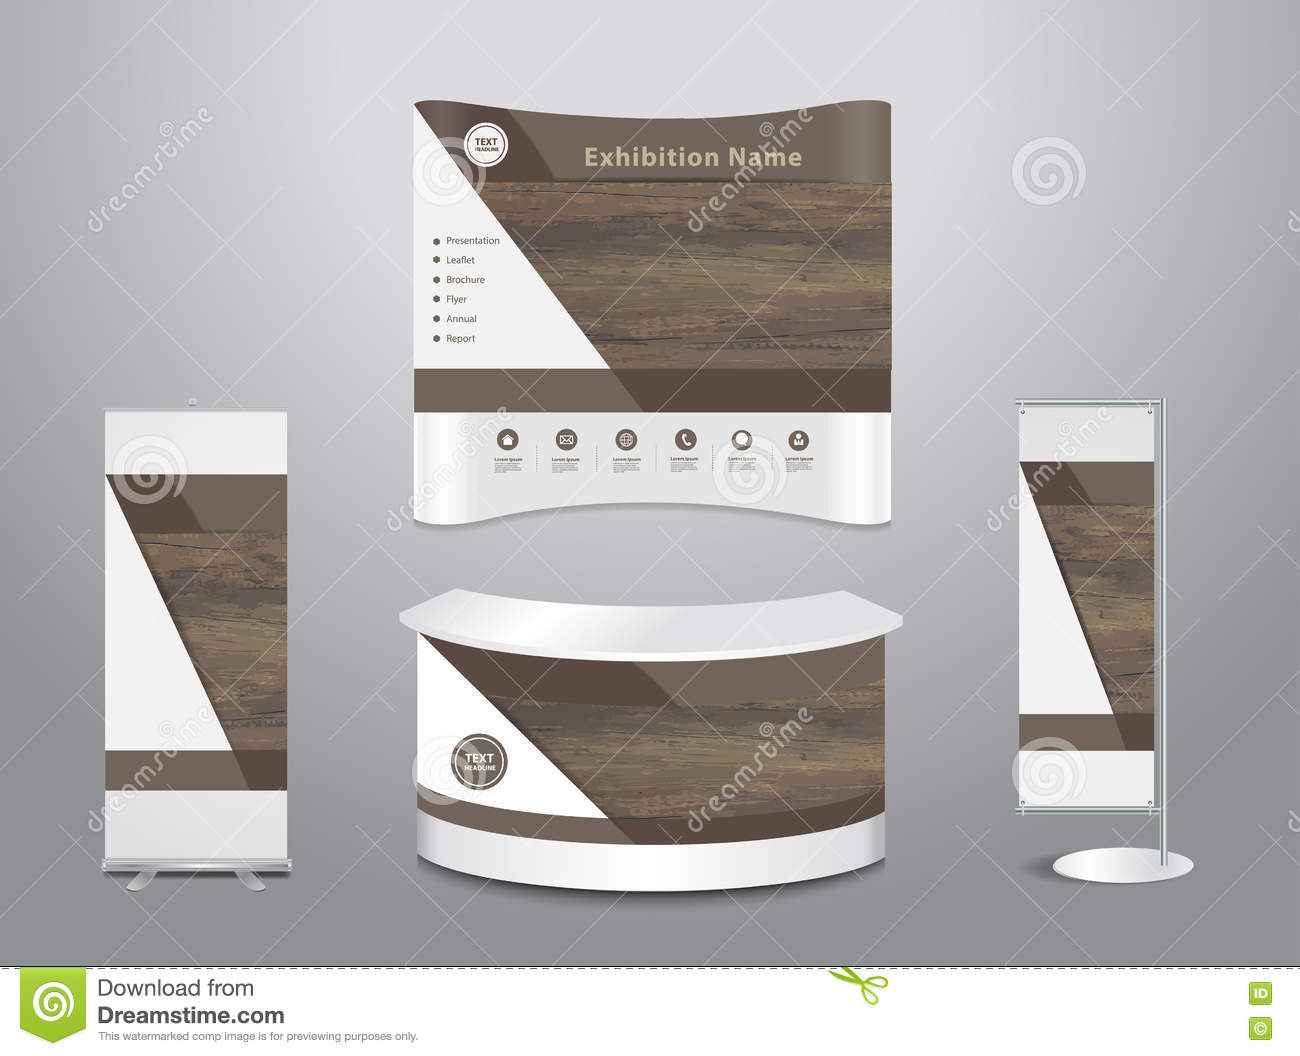 Trade Exhibition Stand Vector : Vector exhibition stand booth mockup clip art k fotosearch